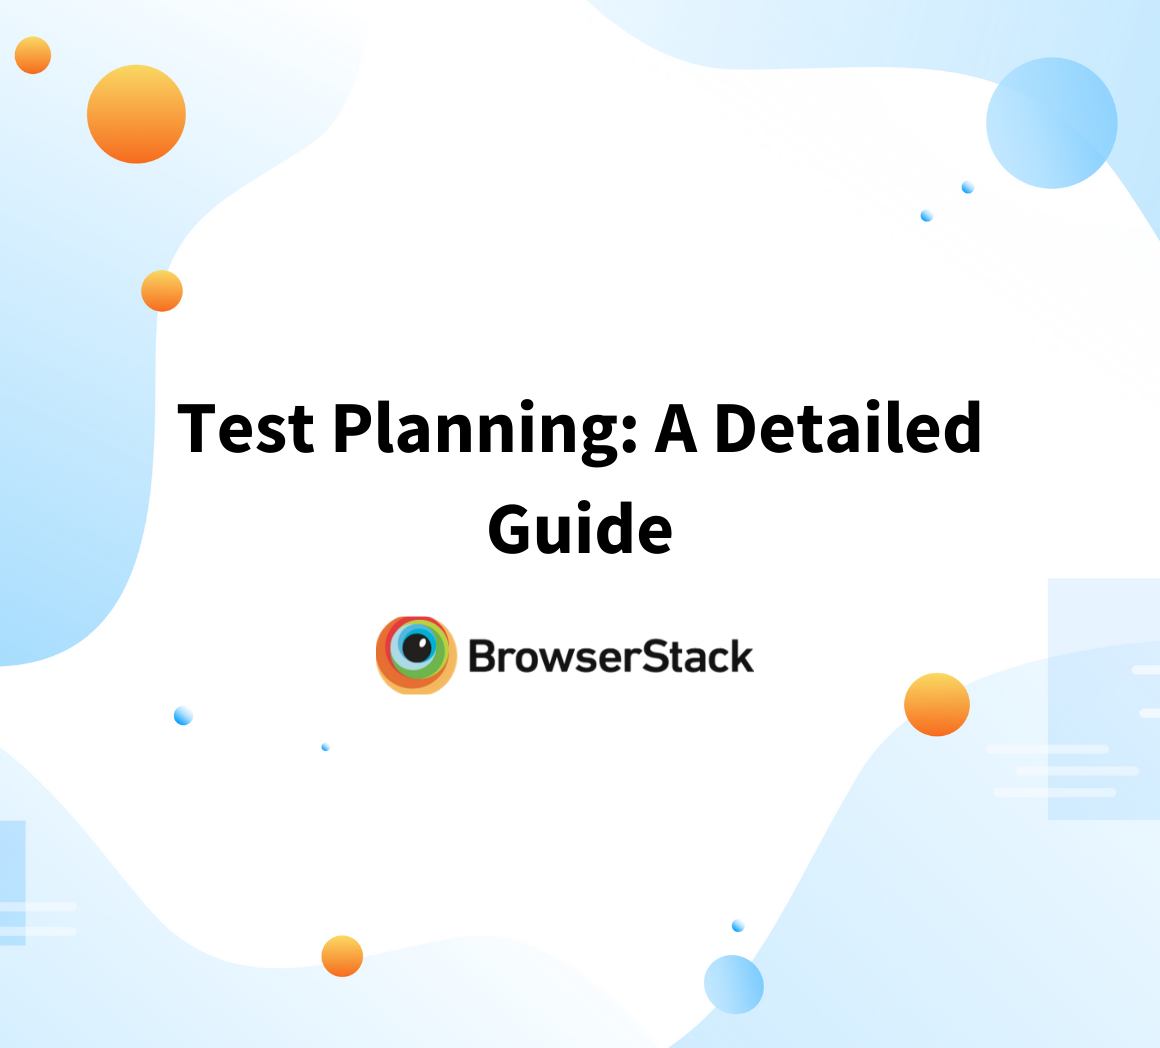 A Detailed Guide on Test Planning